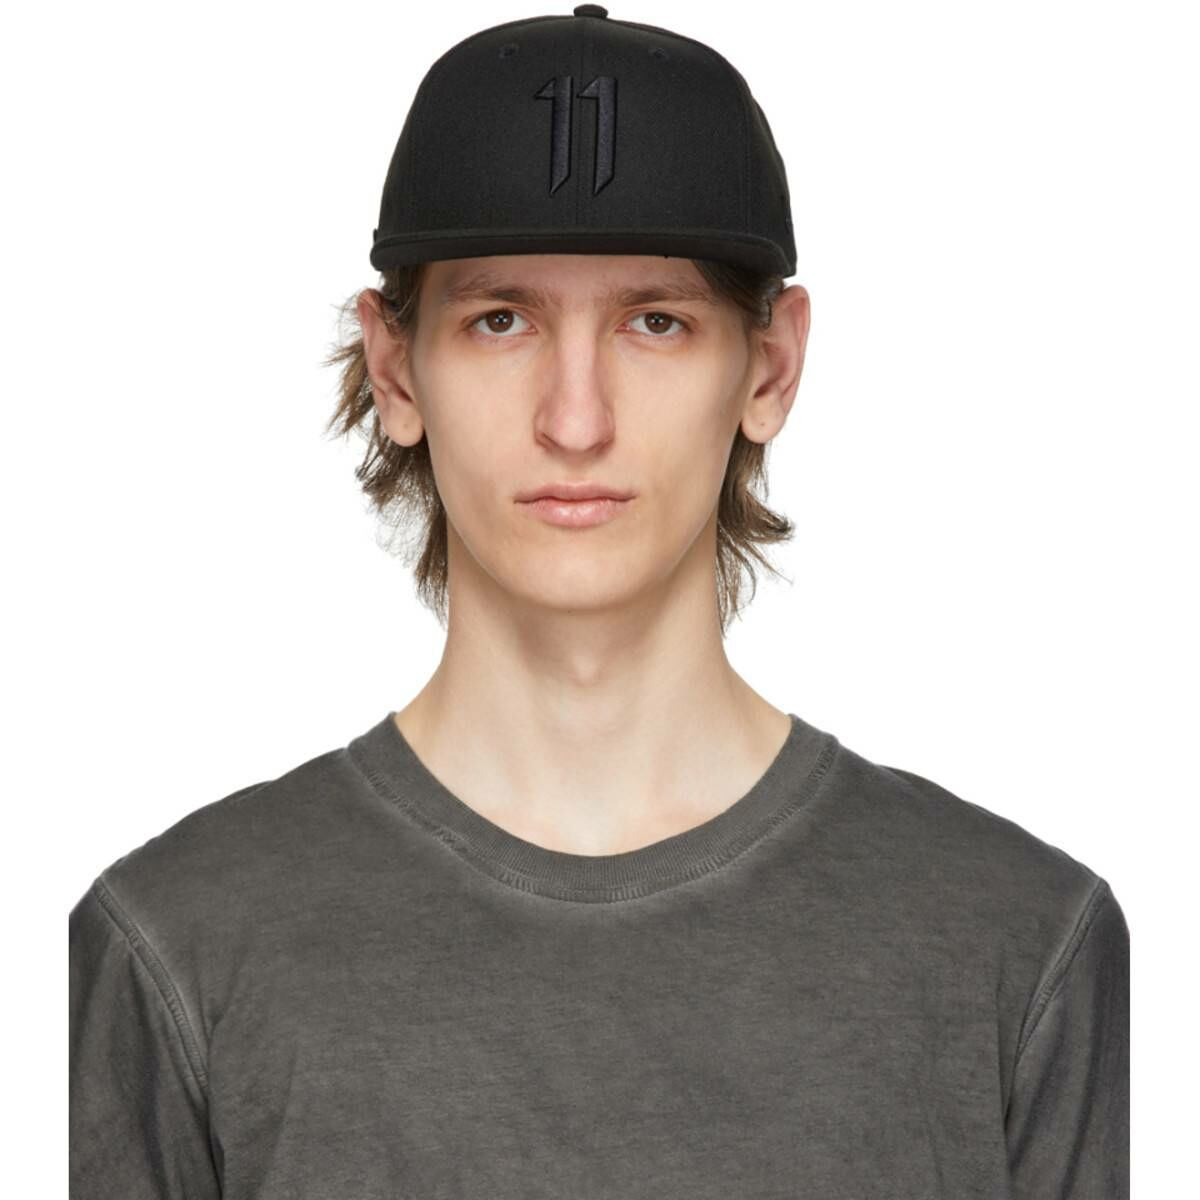 11 by Boris Bidjan Saberi Black New Era Edition Logo Cap Ssense USA MEN Men ACCESSORIES Mens CAPS